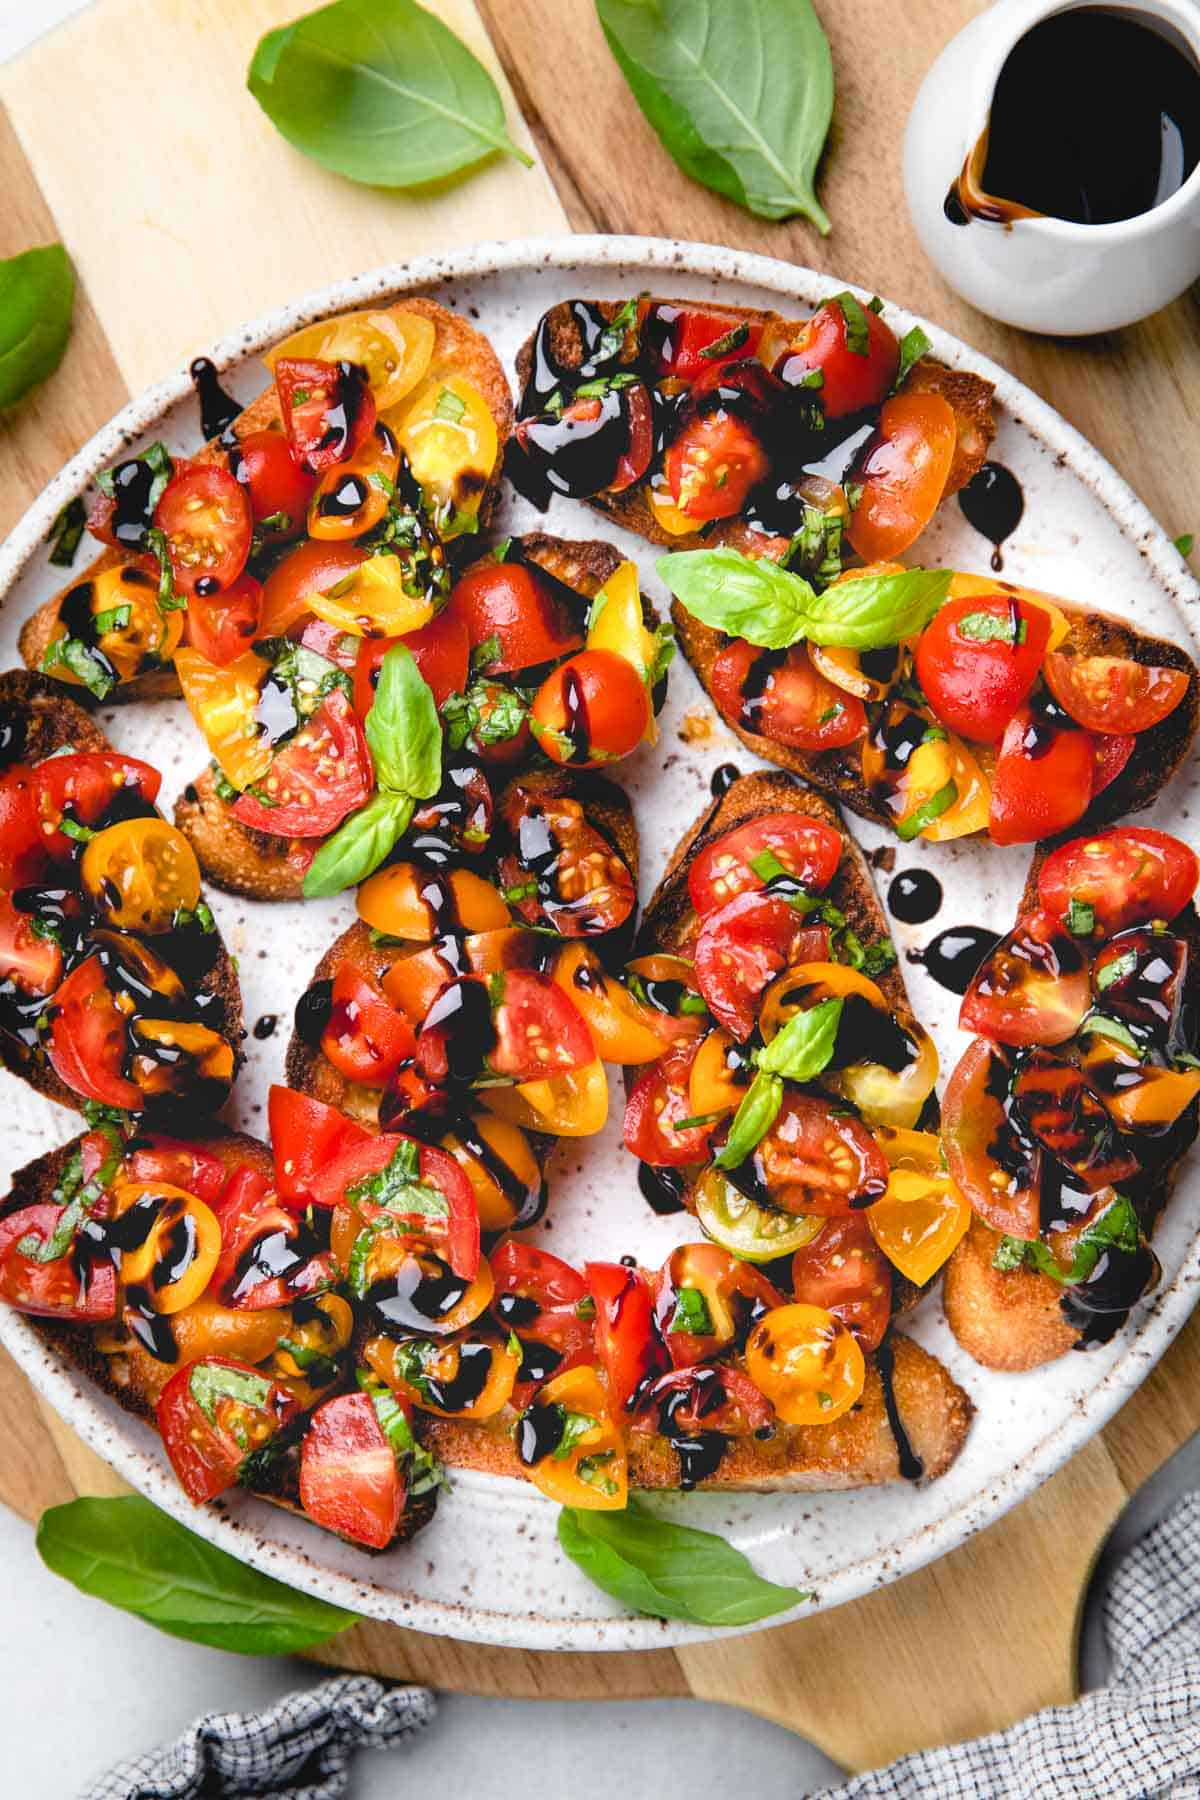 Cherry tomato bruschetta drizzled with balsamic glaze on a white plate.